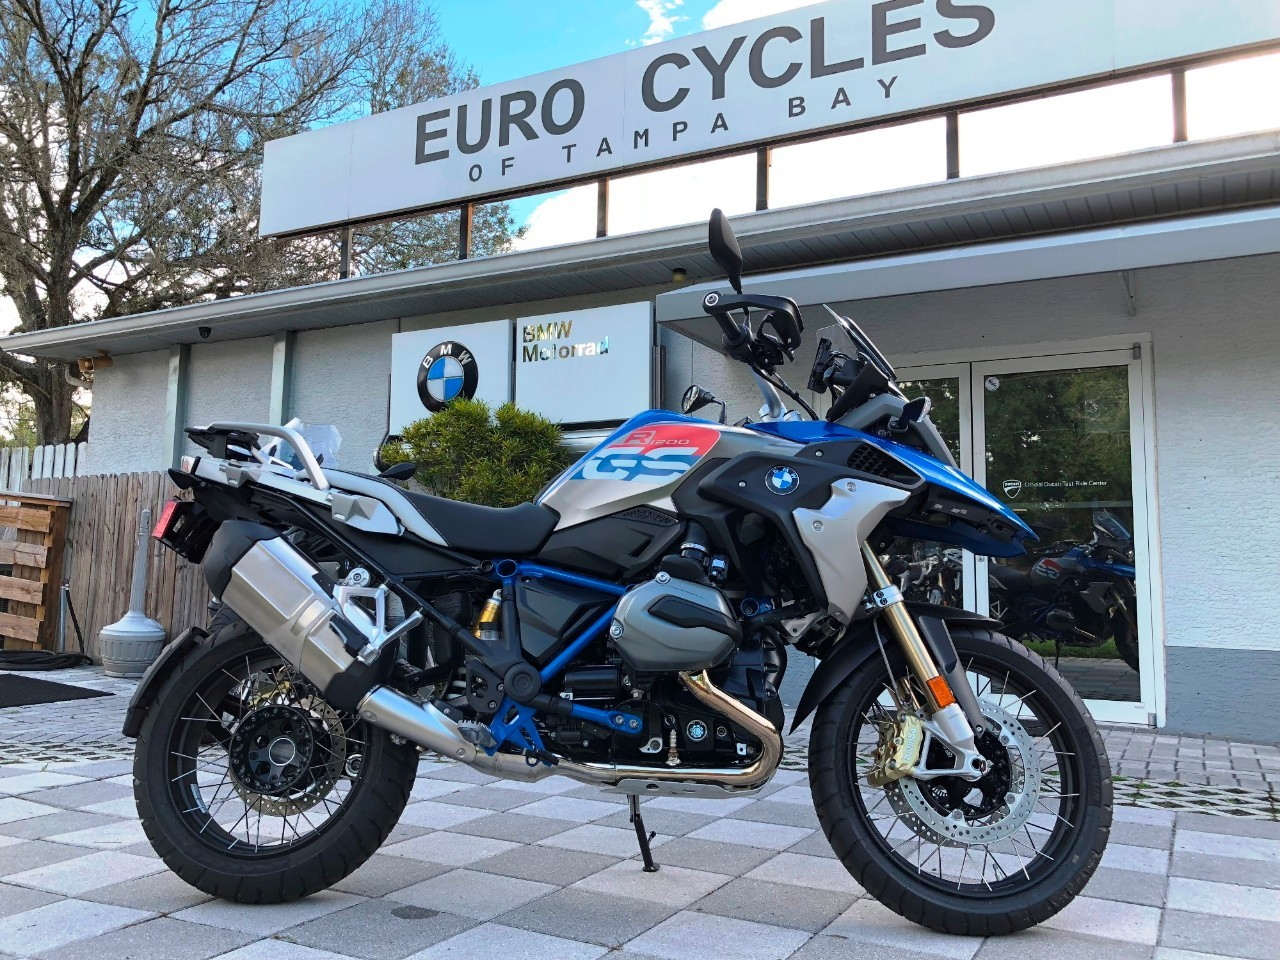 Tampa - Motorcycles For Sale: 1,151 Motorcycles - CycleTrader.com